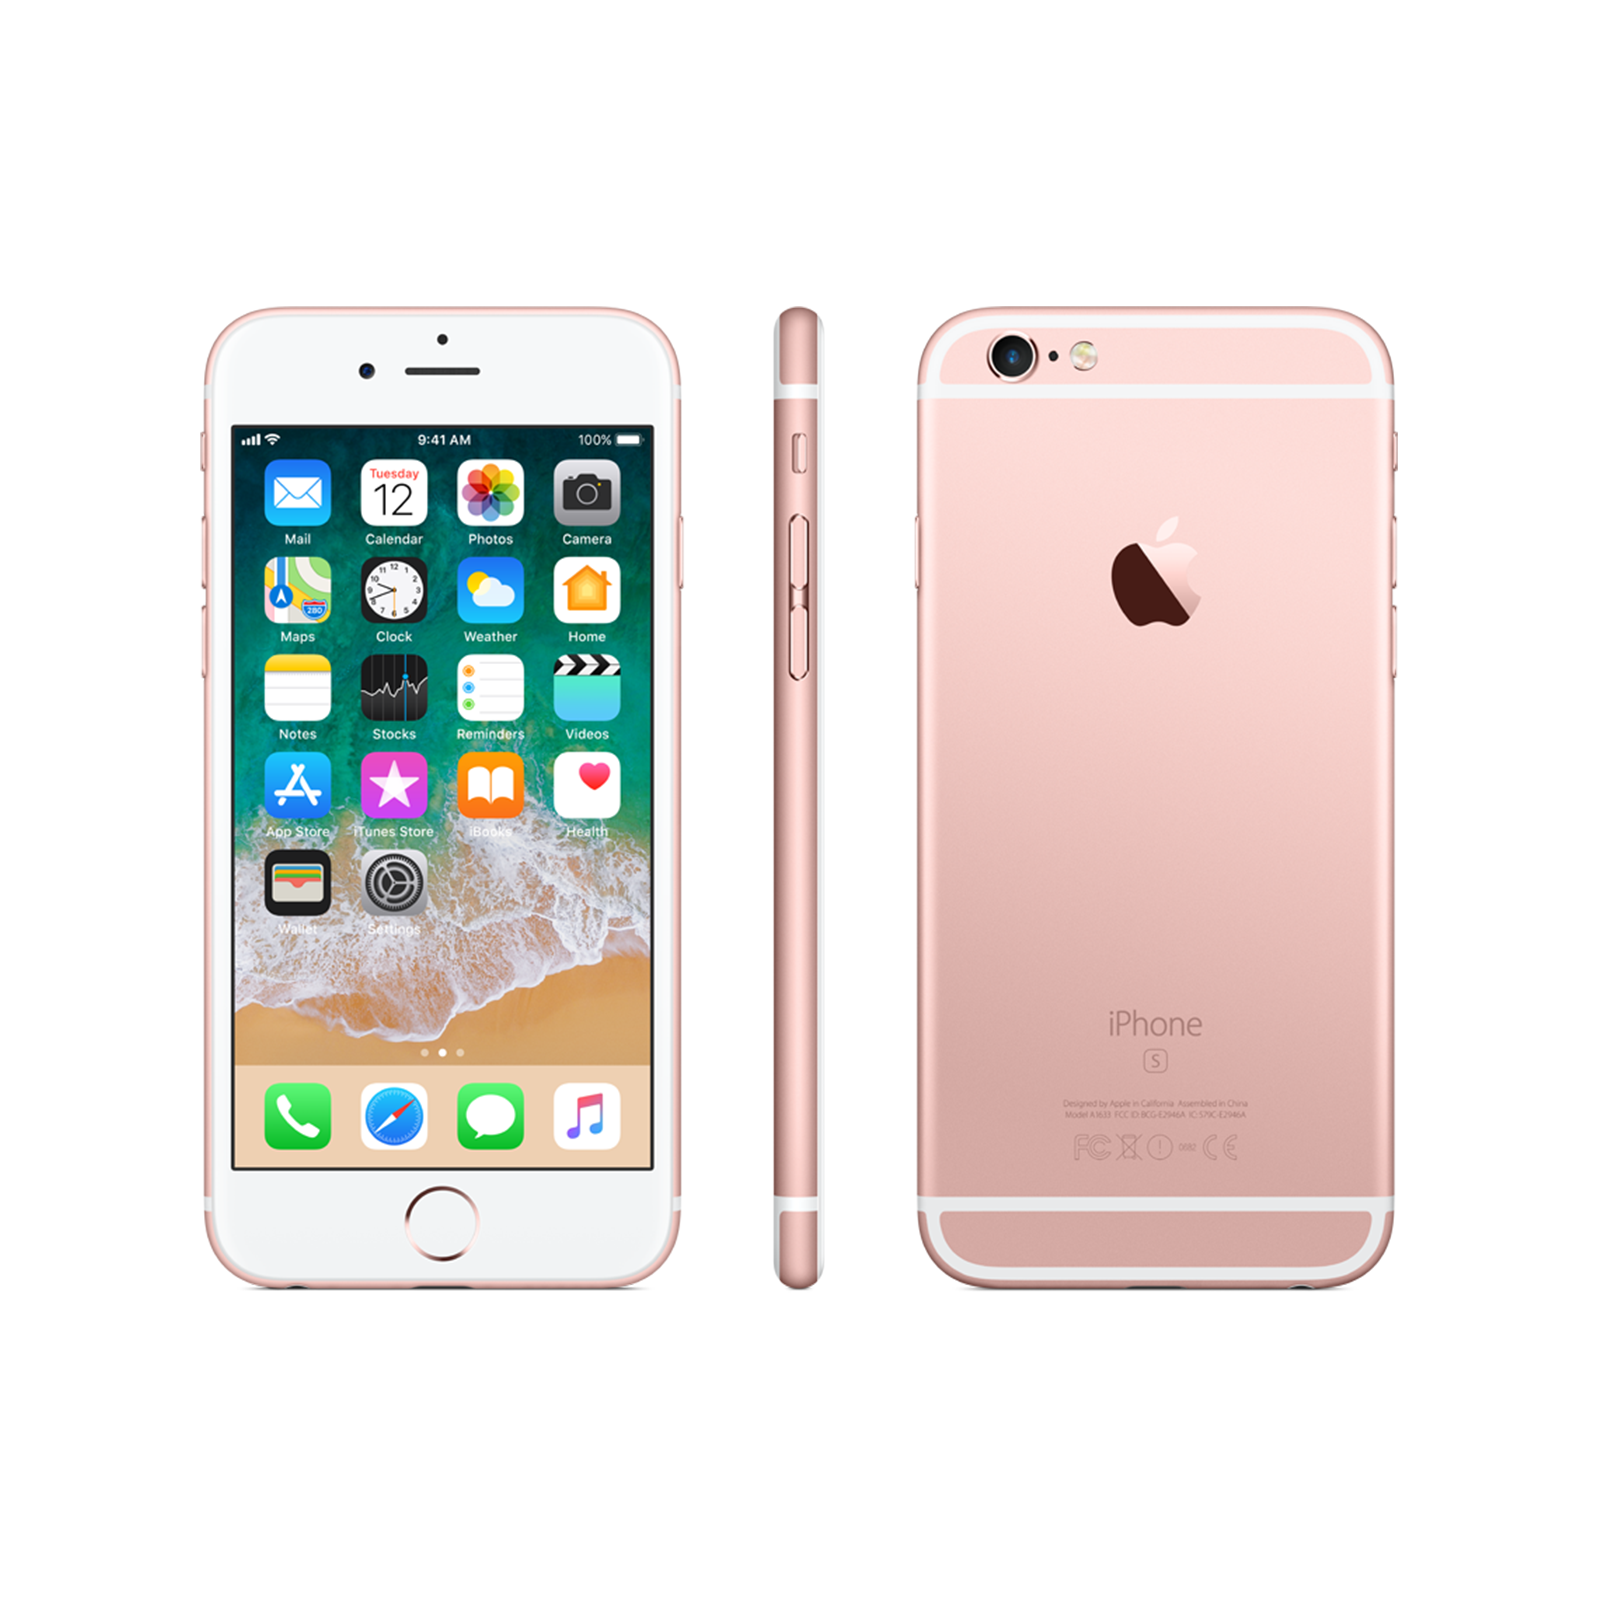 iPhone 6s Rose Gold 16GB.